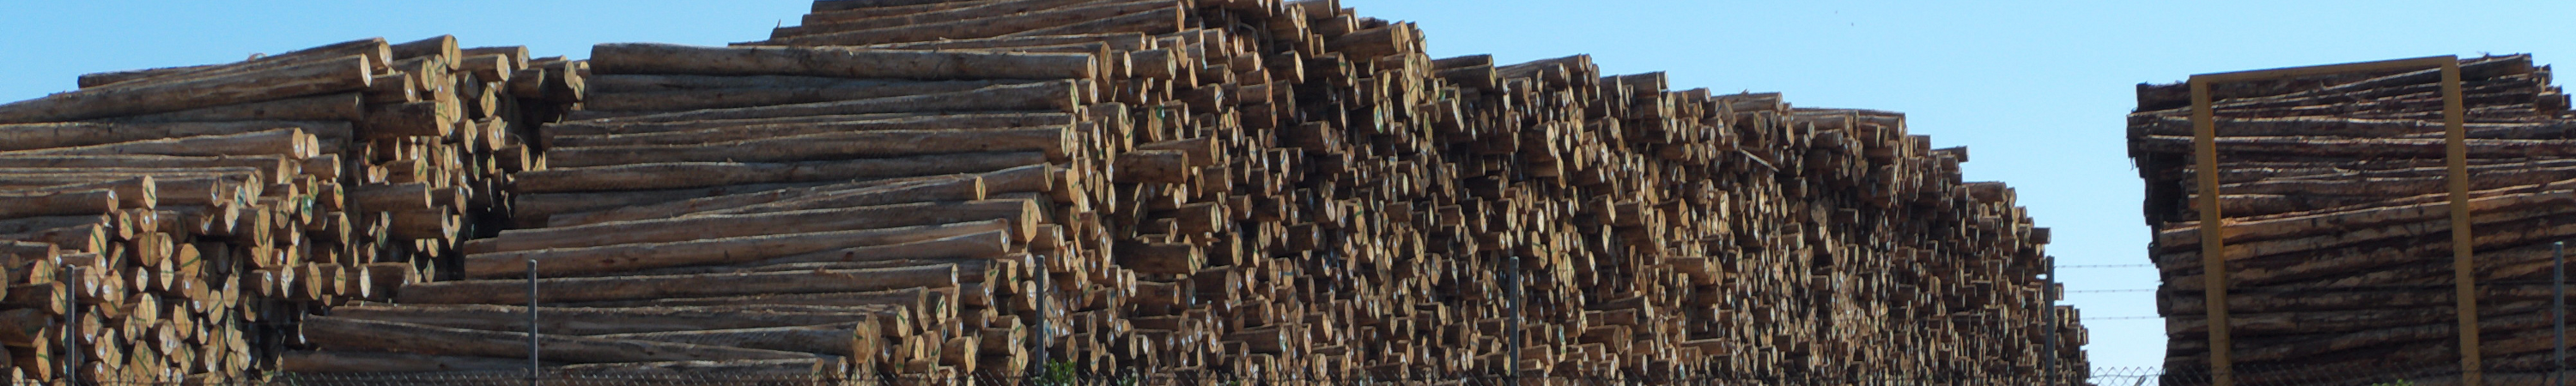 Log Pile at the Port of Burnie, Tasmania